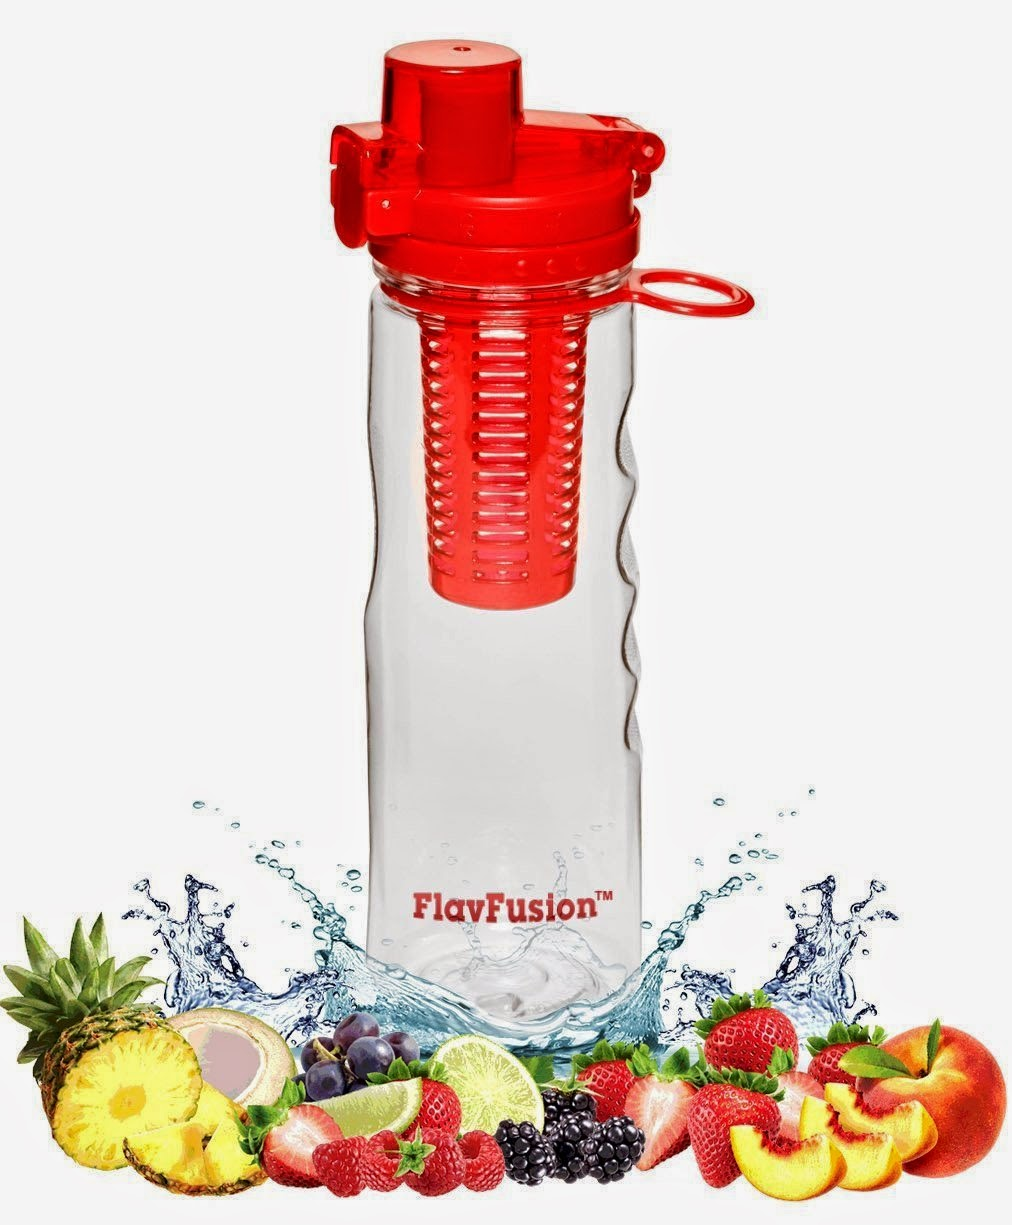 Oma Loves U Flavfusion Infuser Water Bottle Review